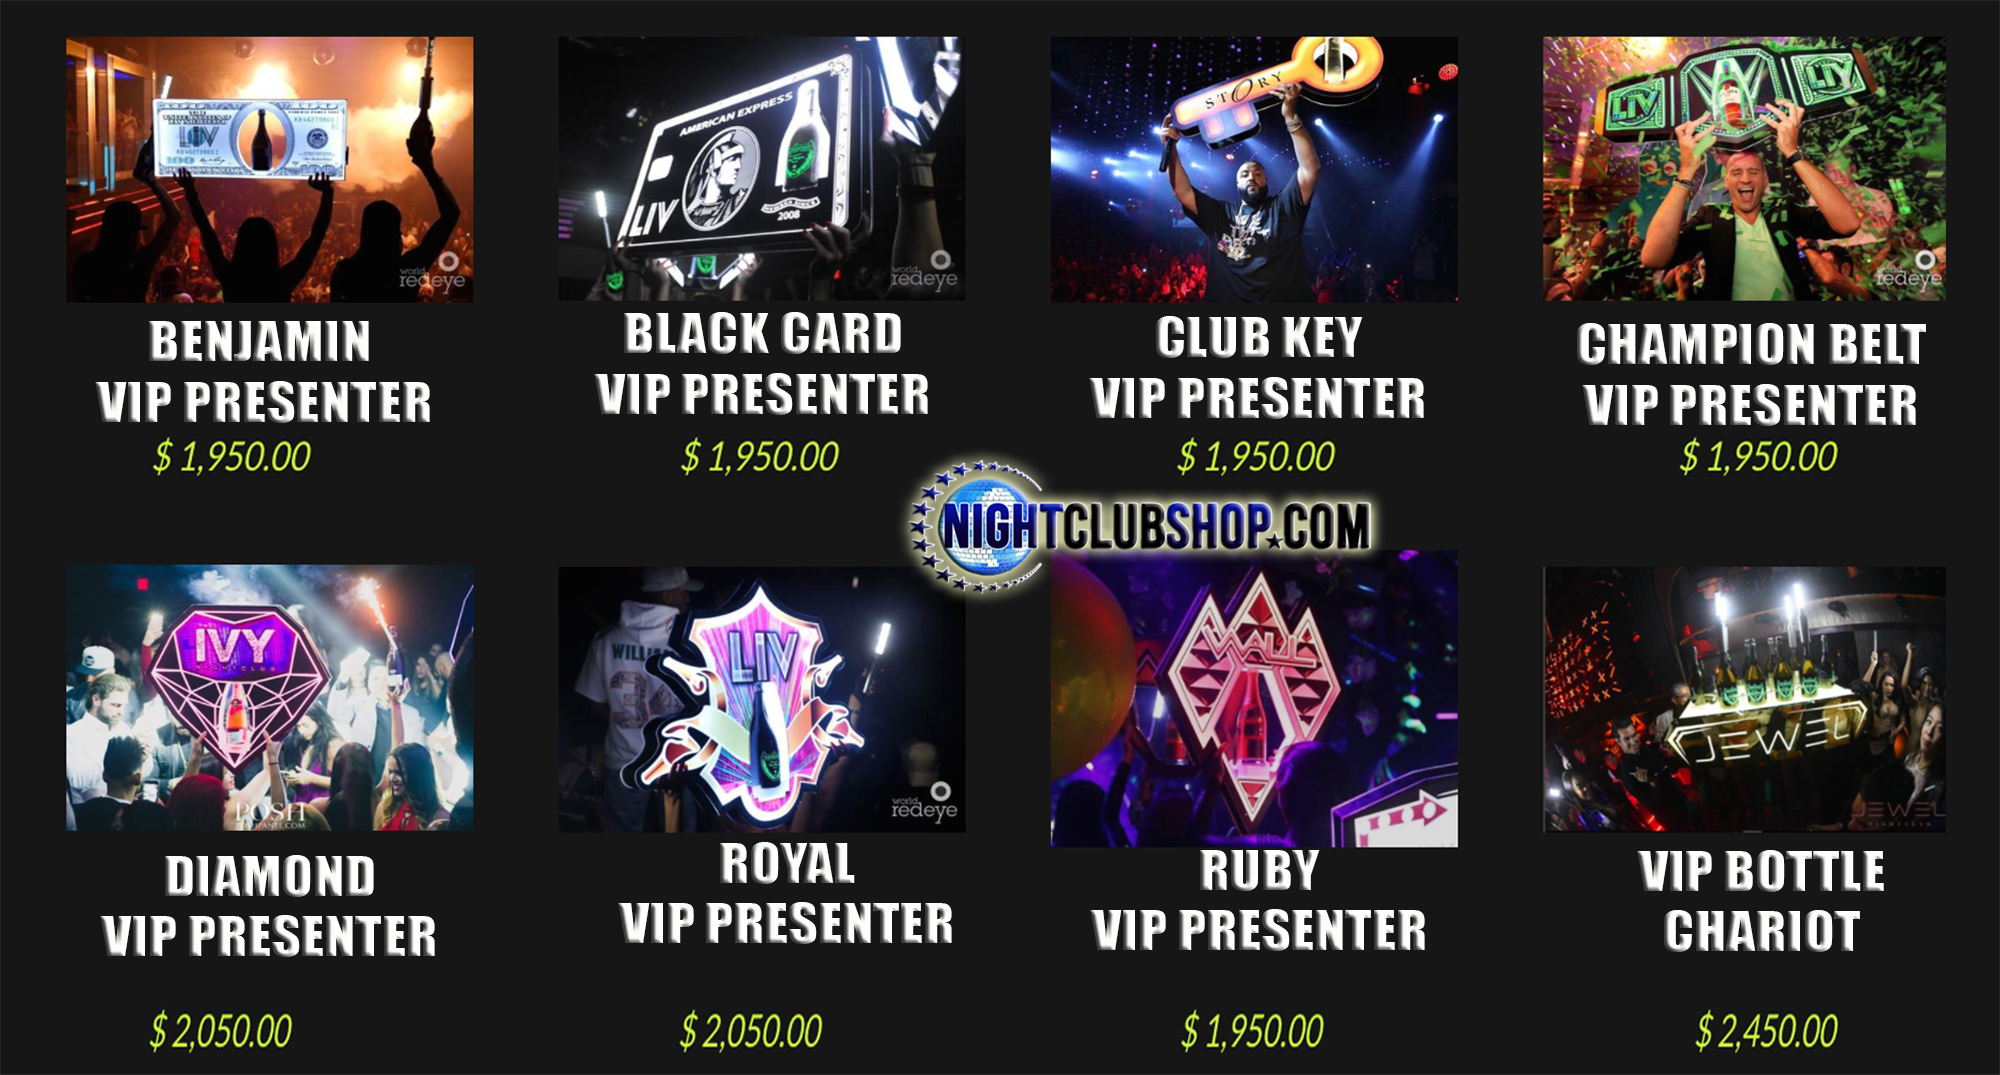 2-vip-monthly-program-nightclub-bar-dj-bottle-service-nightclubshop.jpg